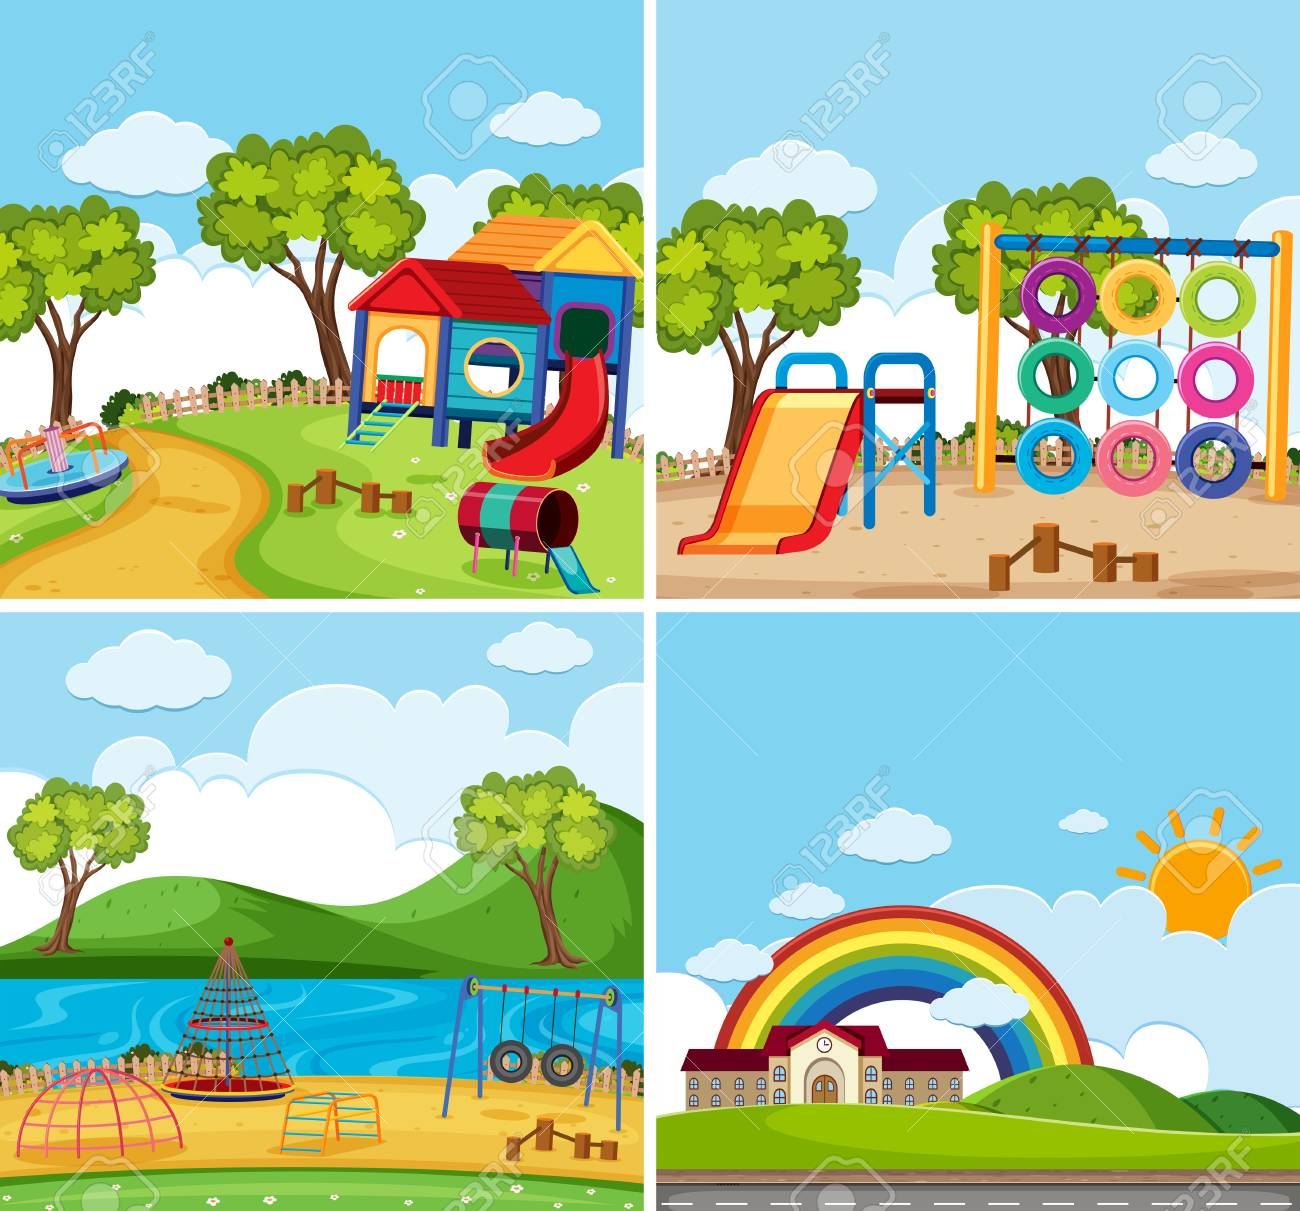 Four background scenes with playground in the park illustration.